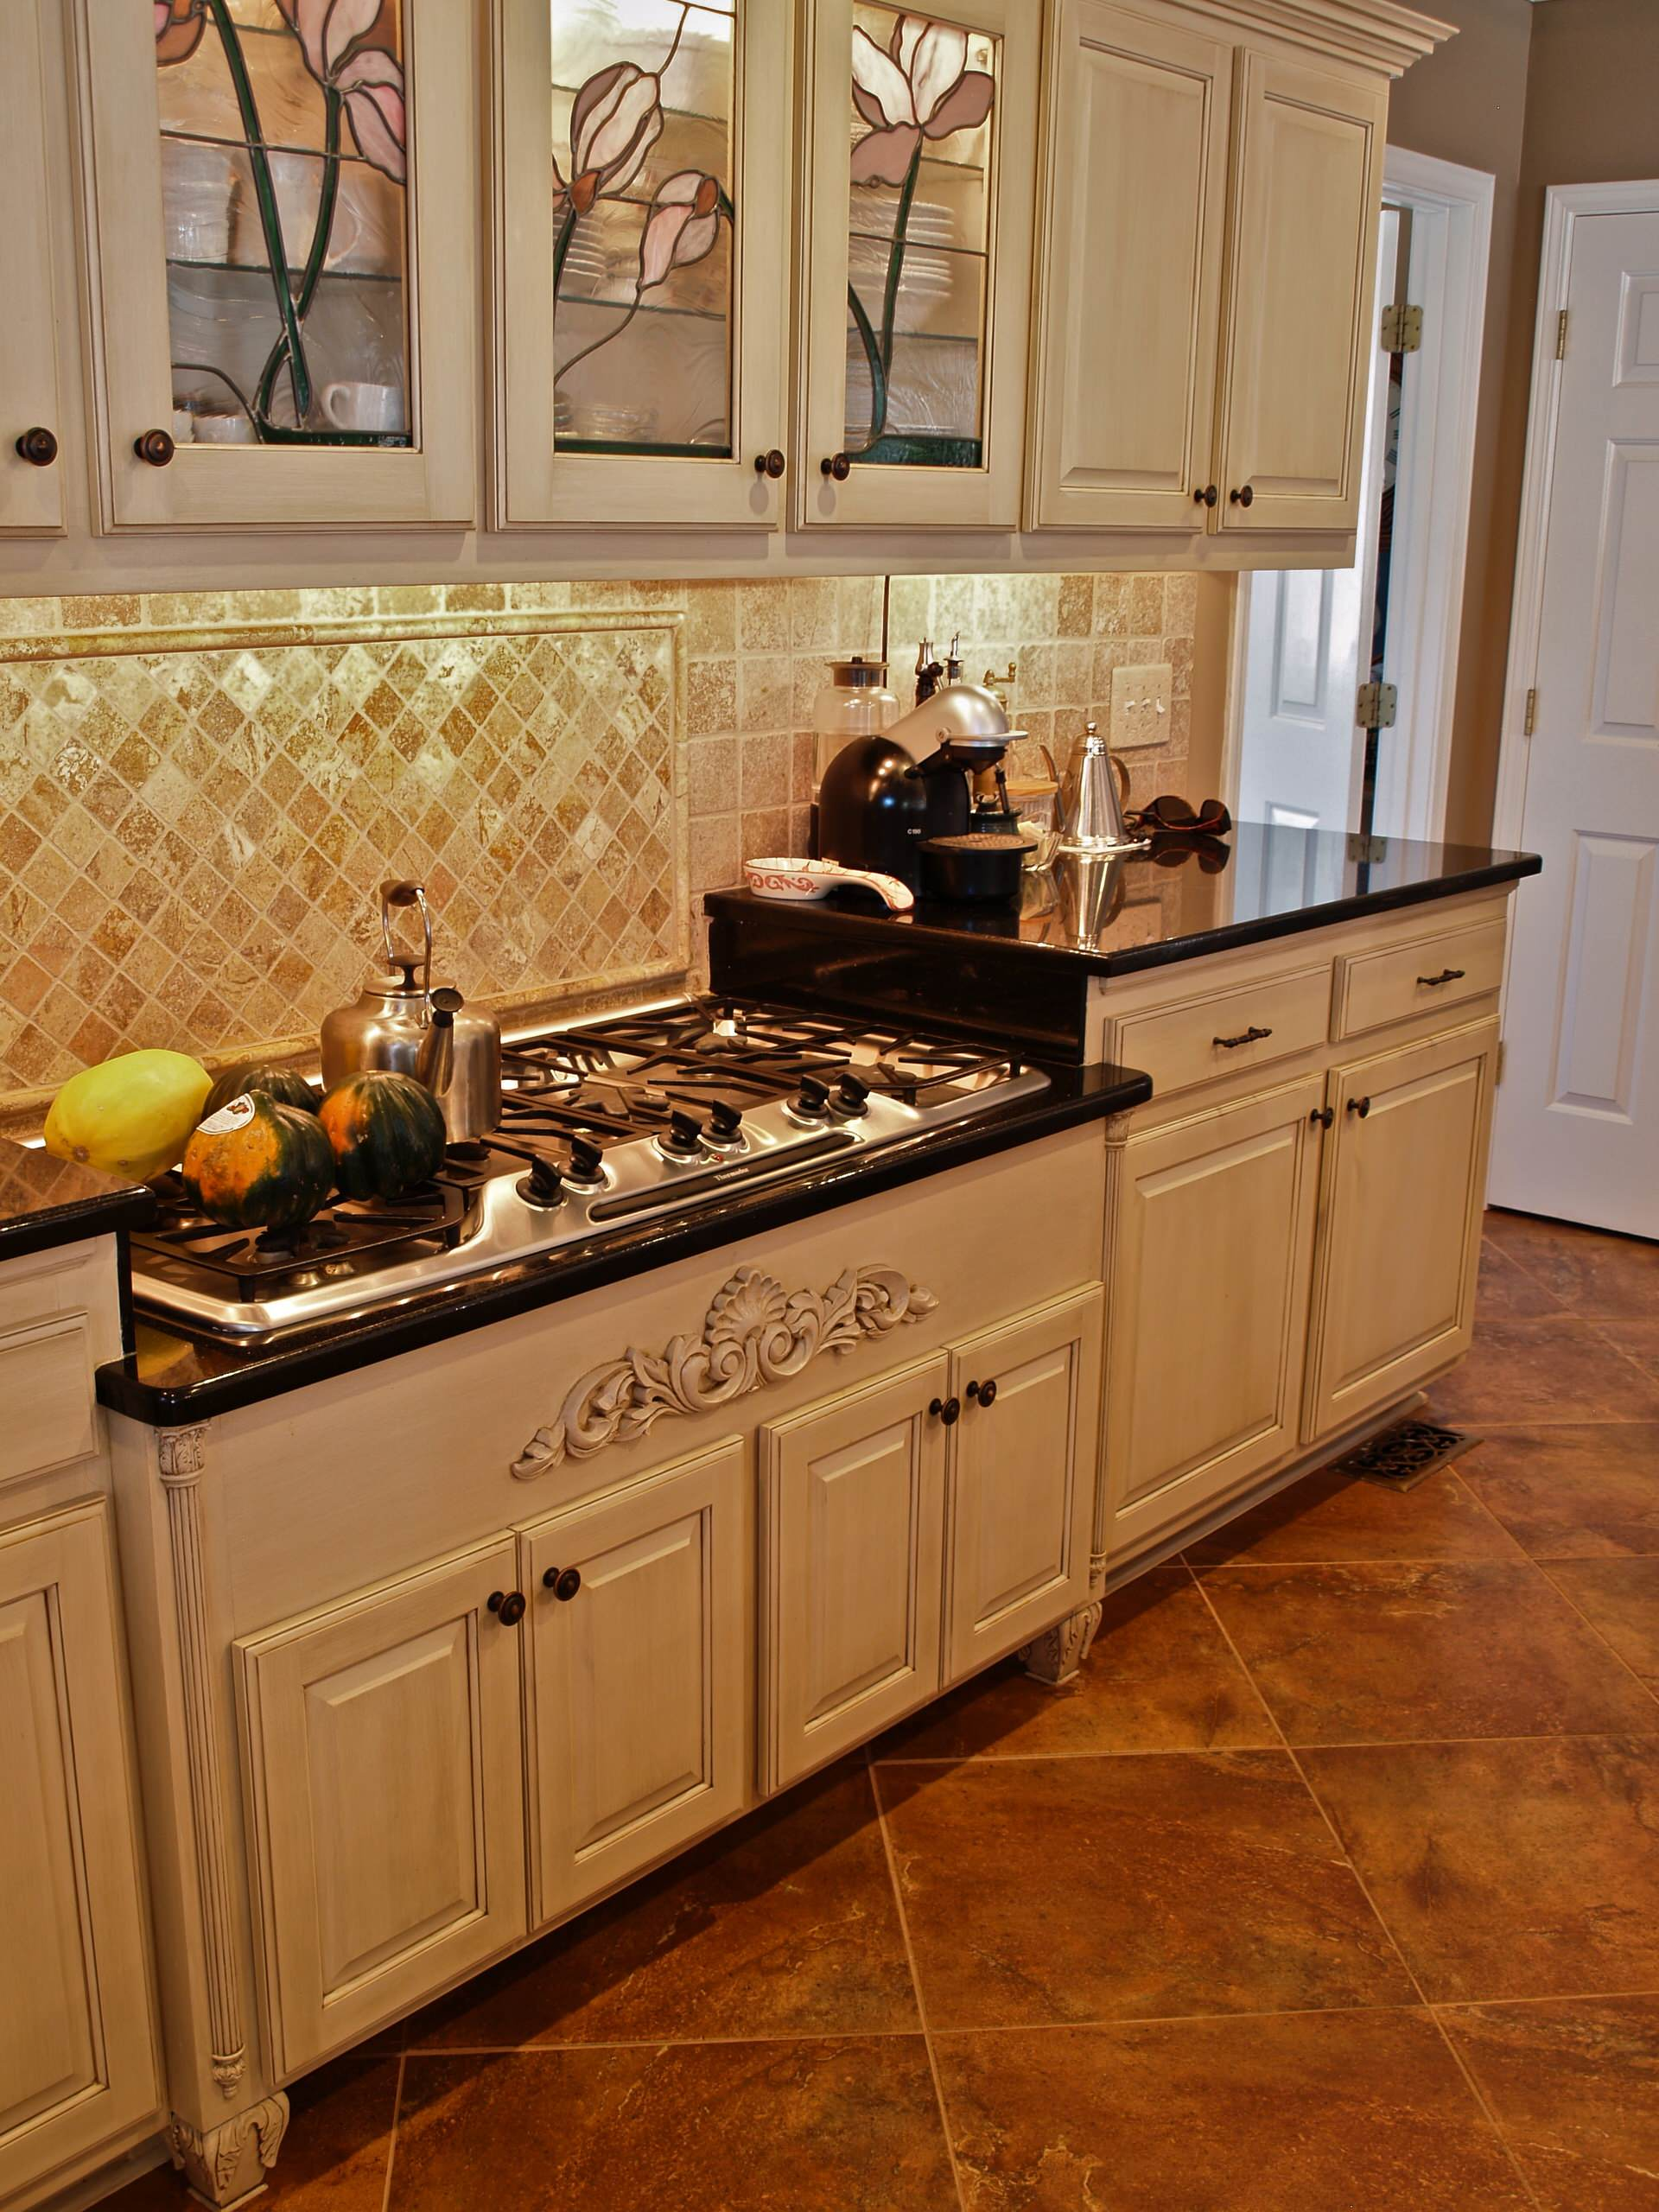 Cabinet Refacing,Stain glass doors, , Off white with glaze